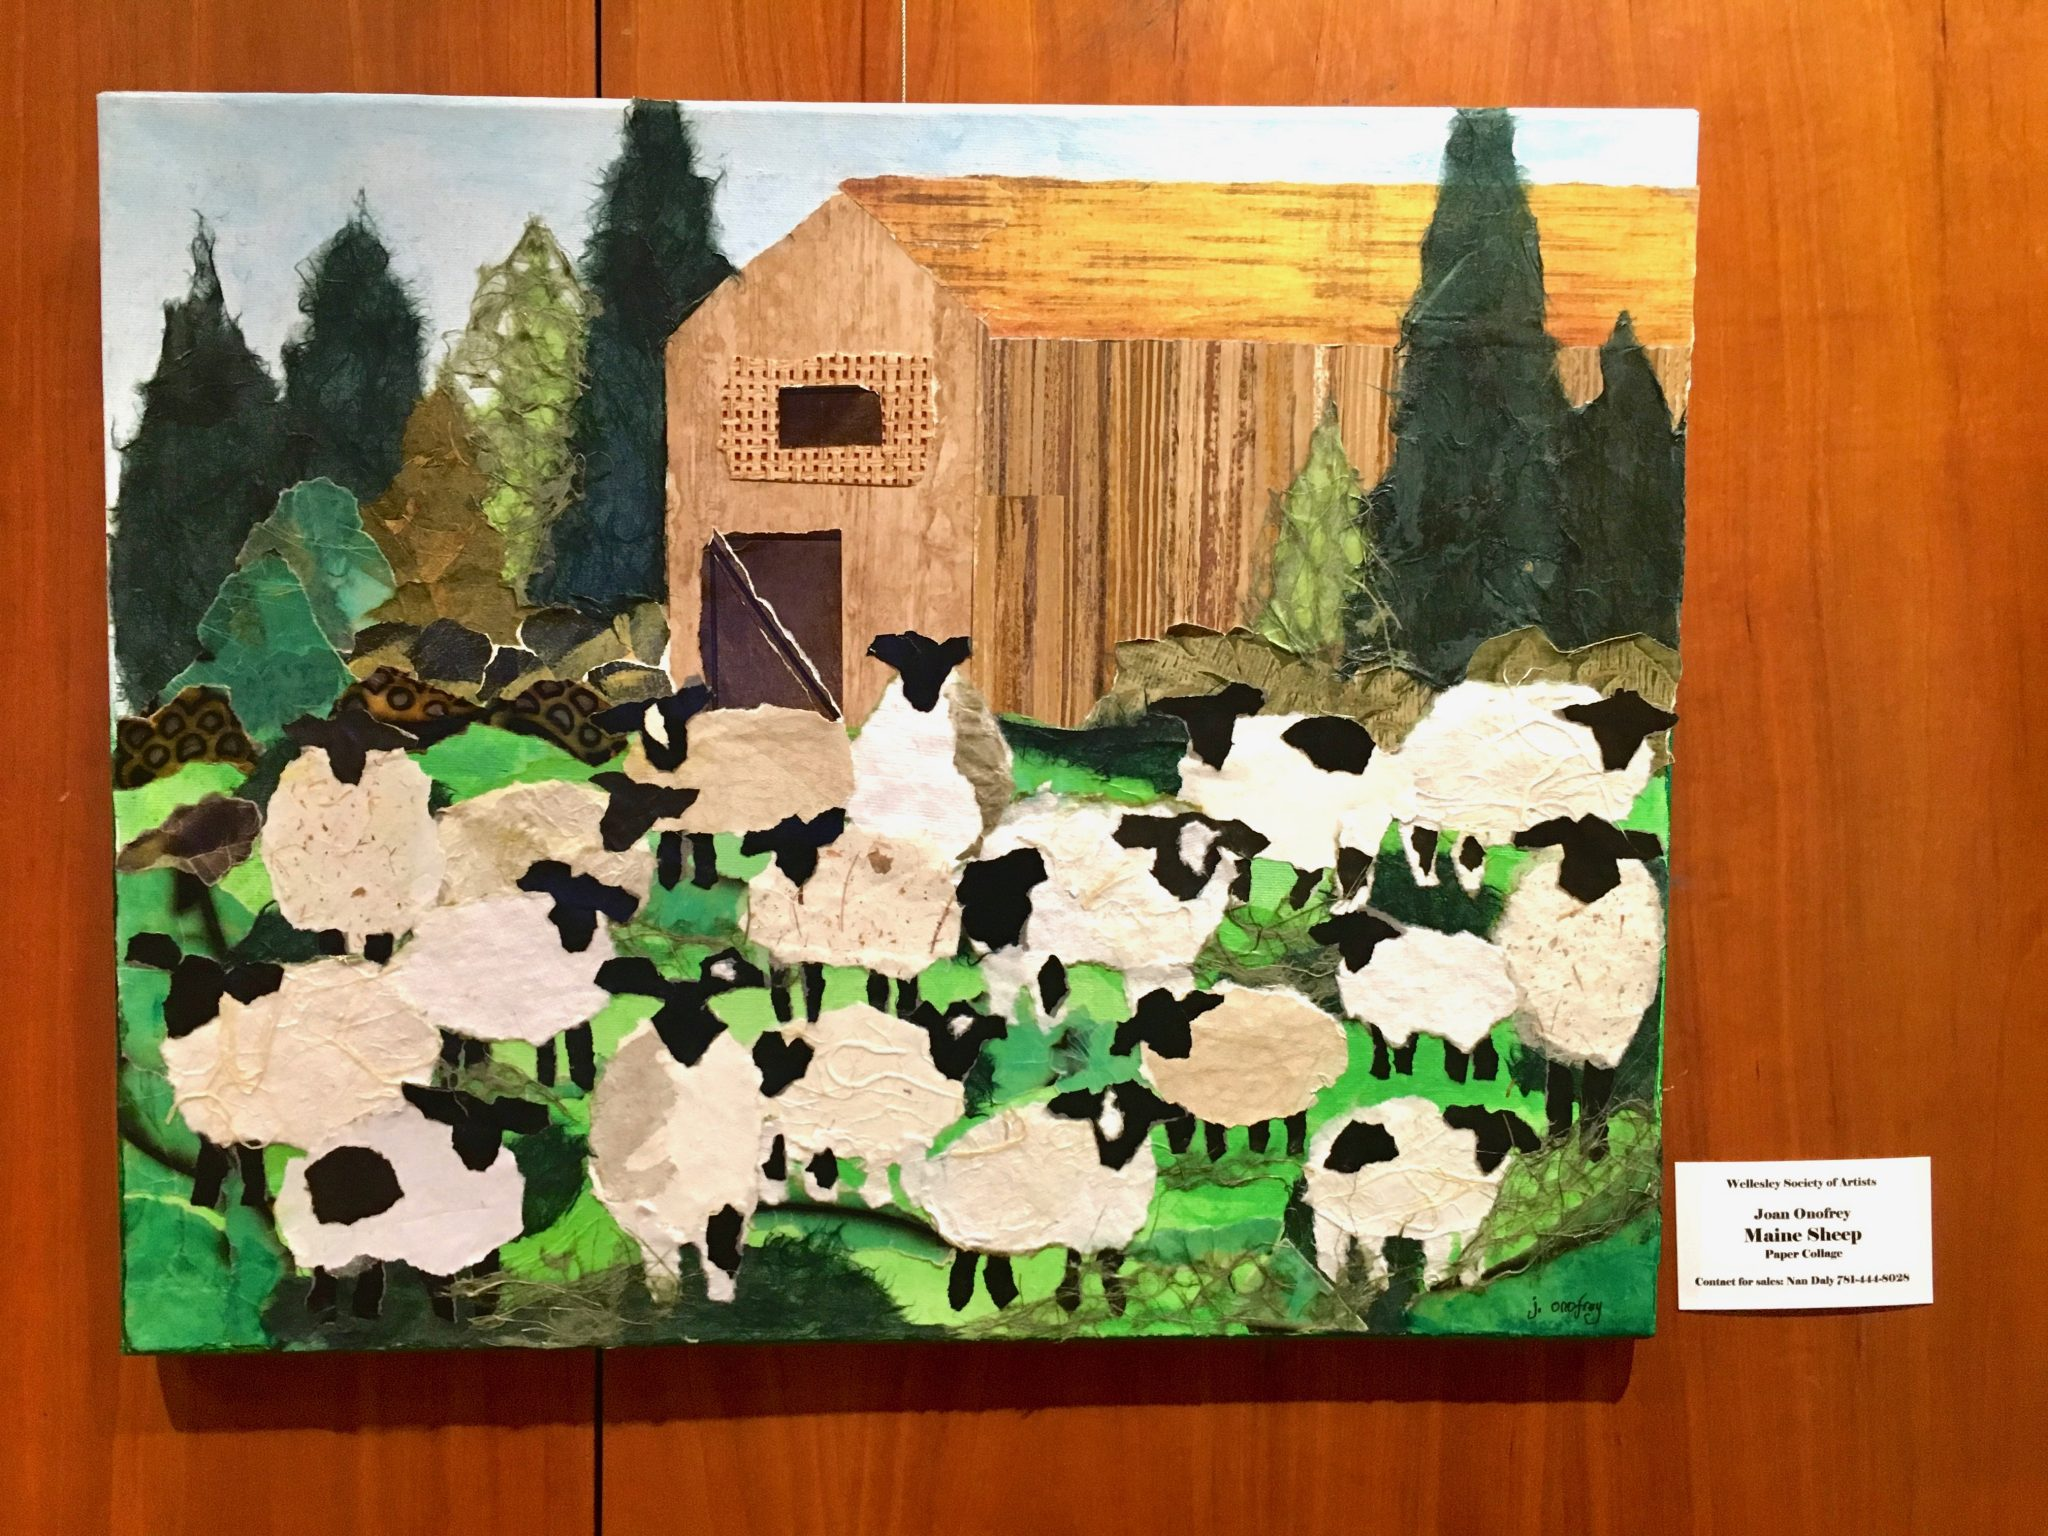 Maine Sheep, by Joan Onofrey